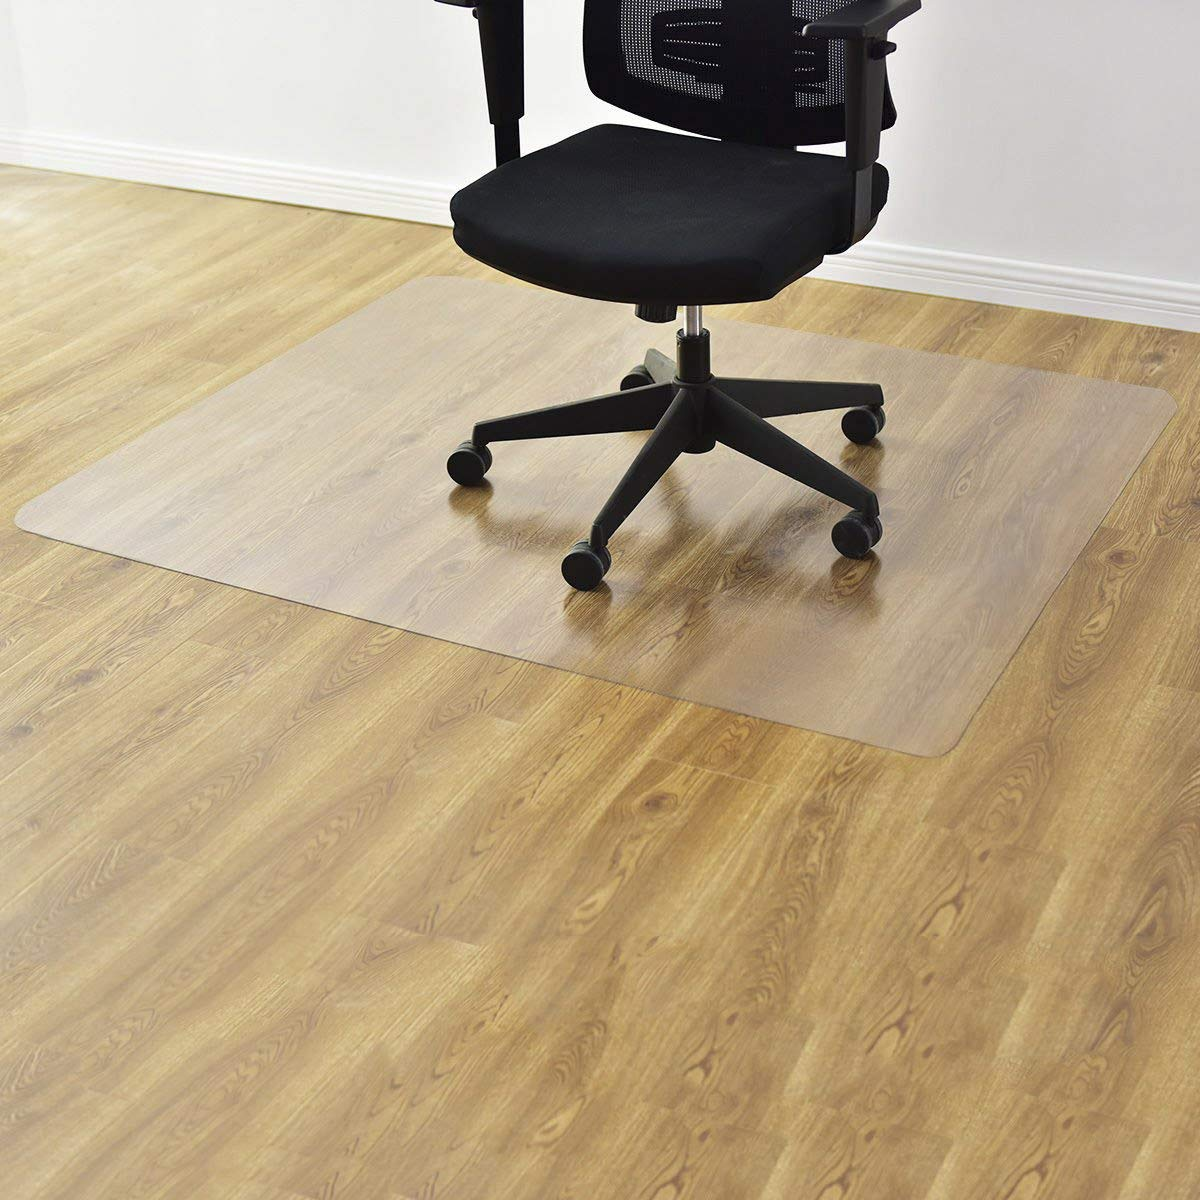 Goplus PVC Chair Mat for Hardwood Floor Clear Multi-Purpose Floor Protector for Office and Home Anti-Slip Floor Protective Mats (47'' x 59'')